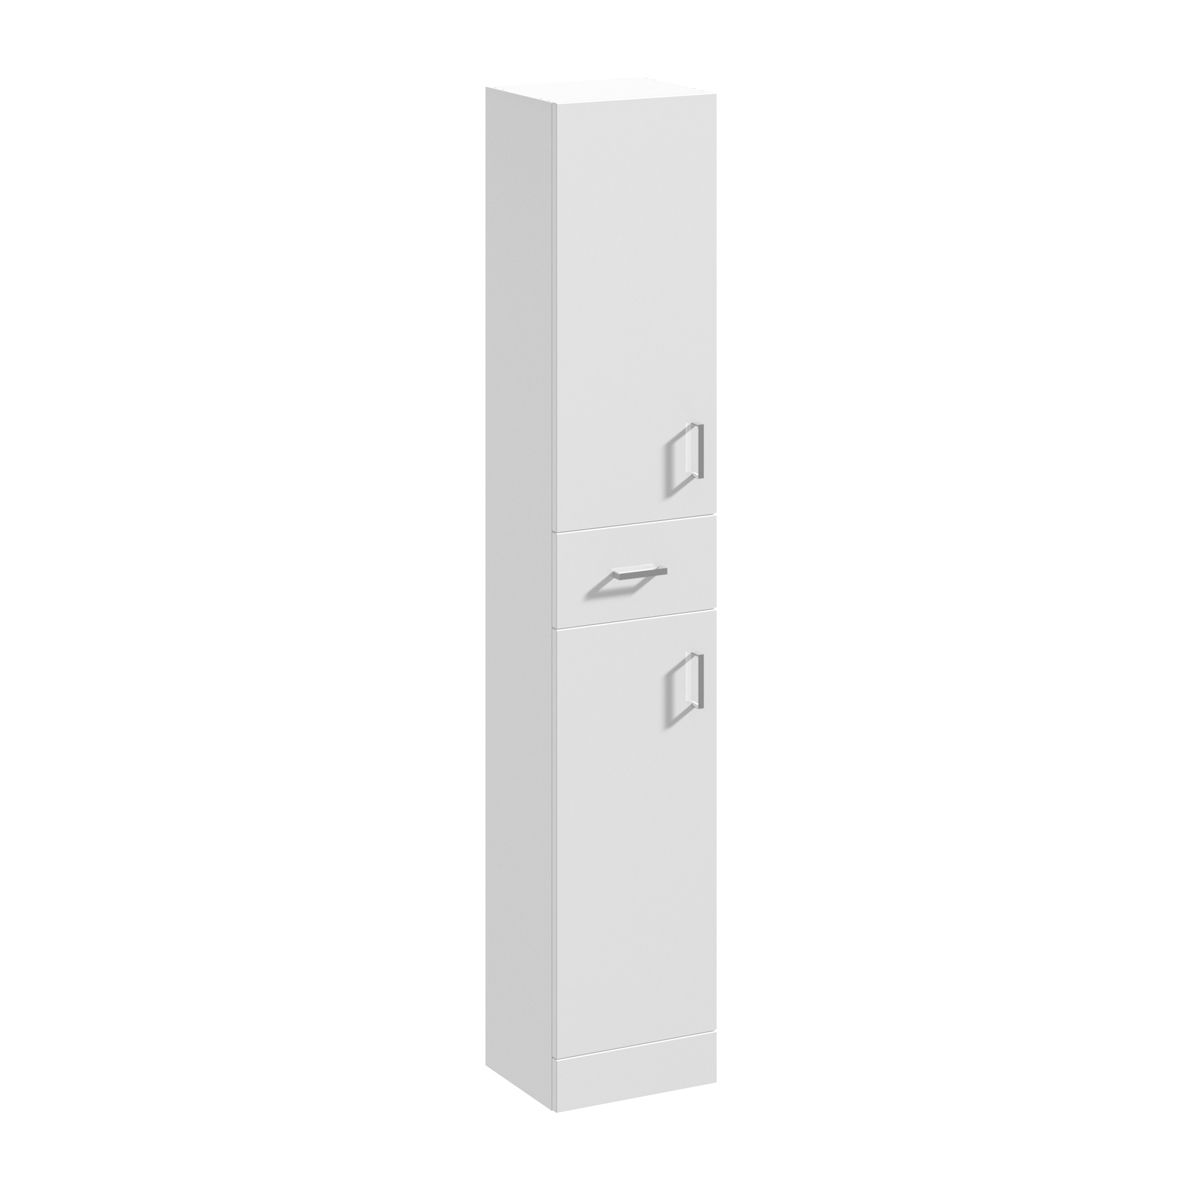 Nuie High Gloss White Tallboy Unit 350 x 330mm